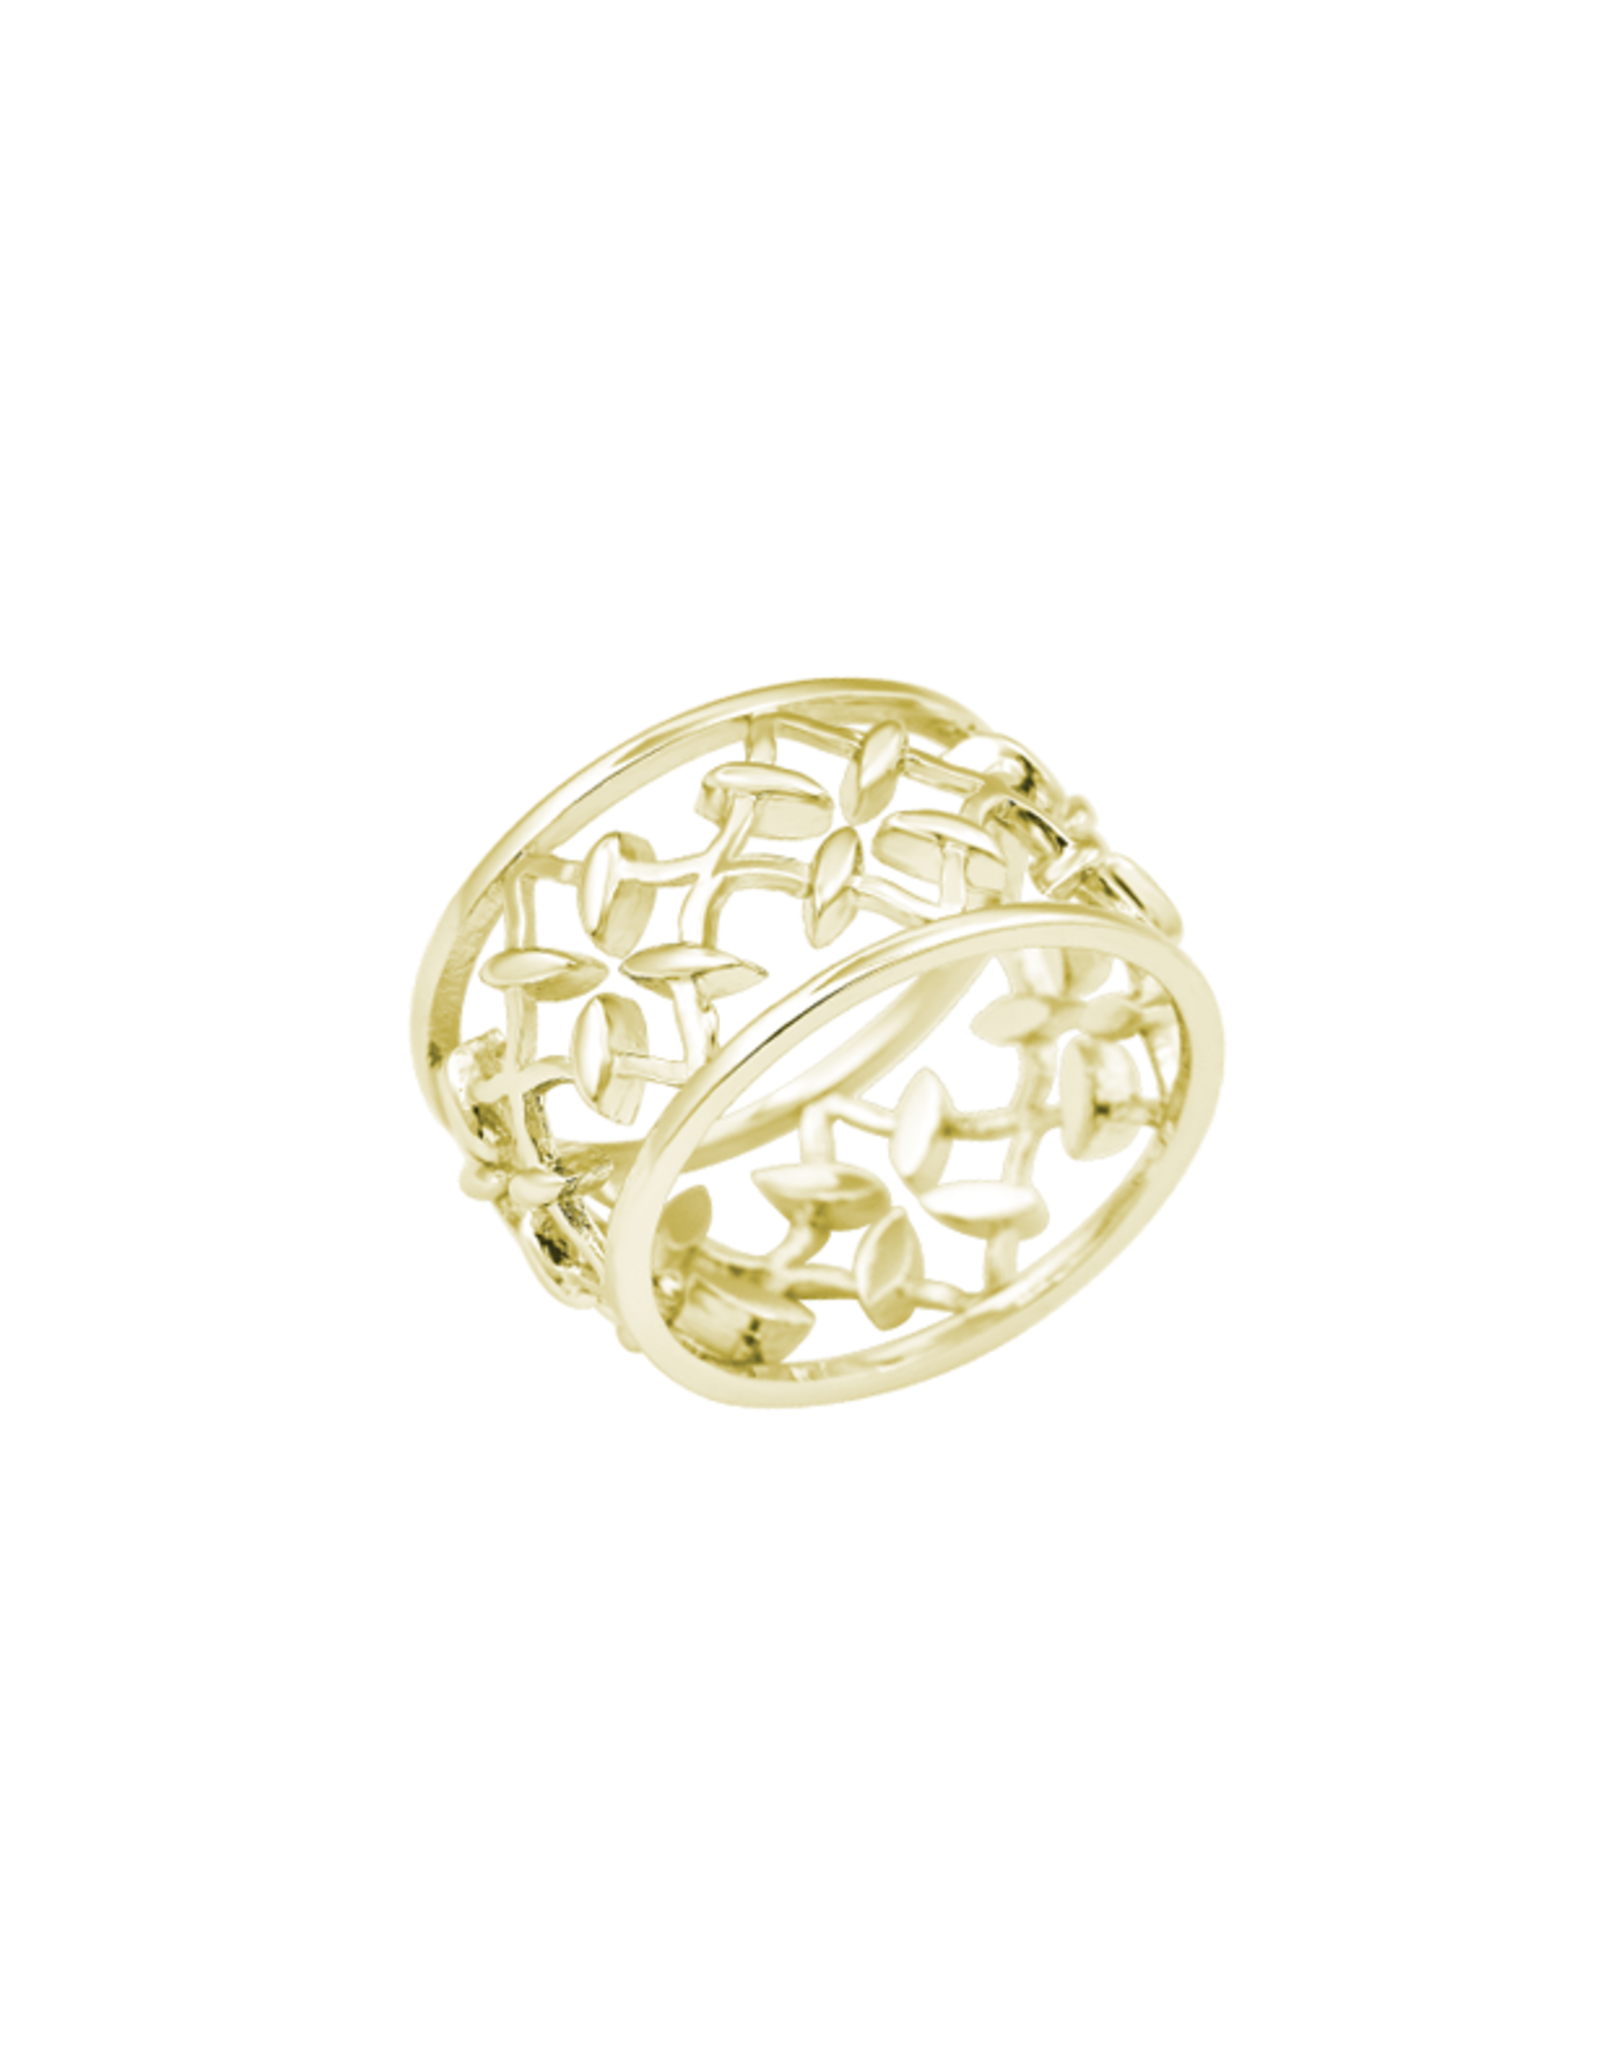 Natalie Wood Designs Believer Ring - Gold